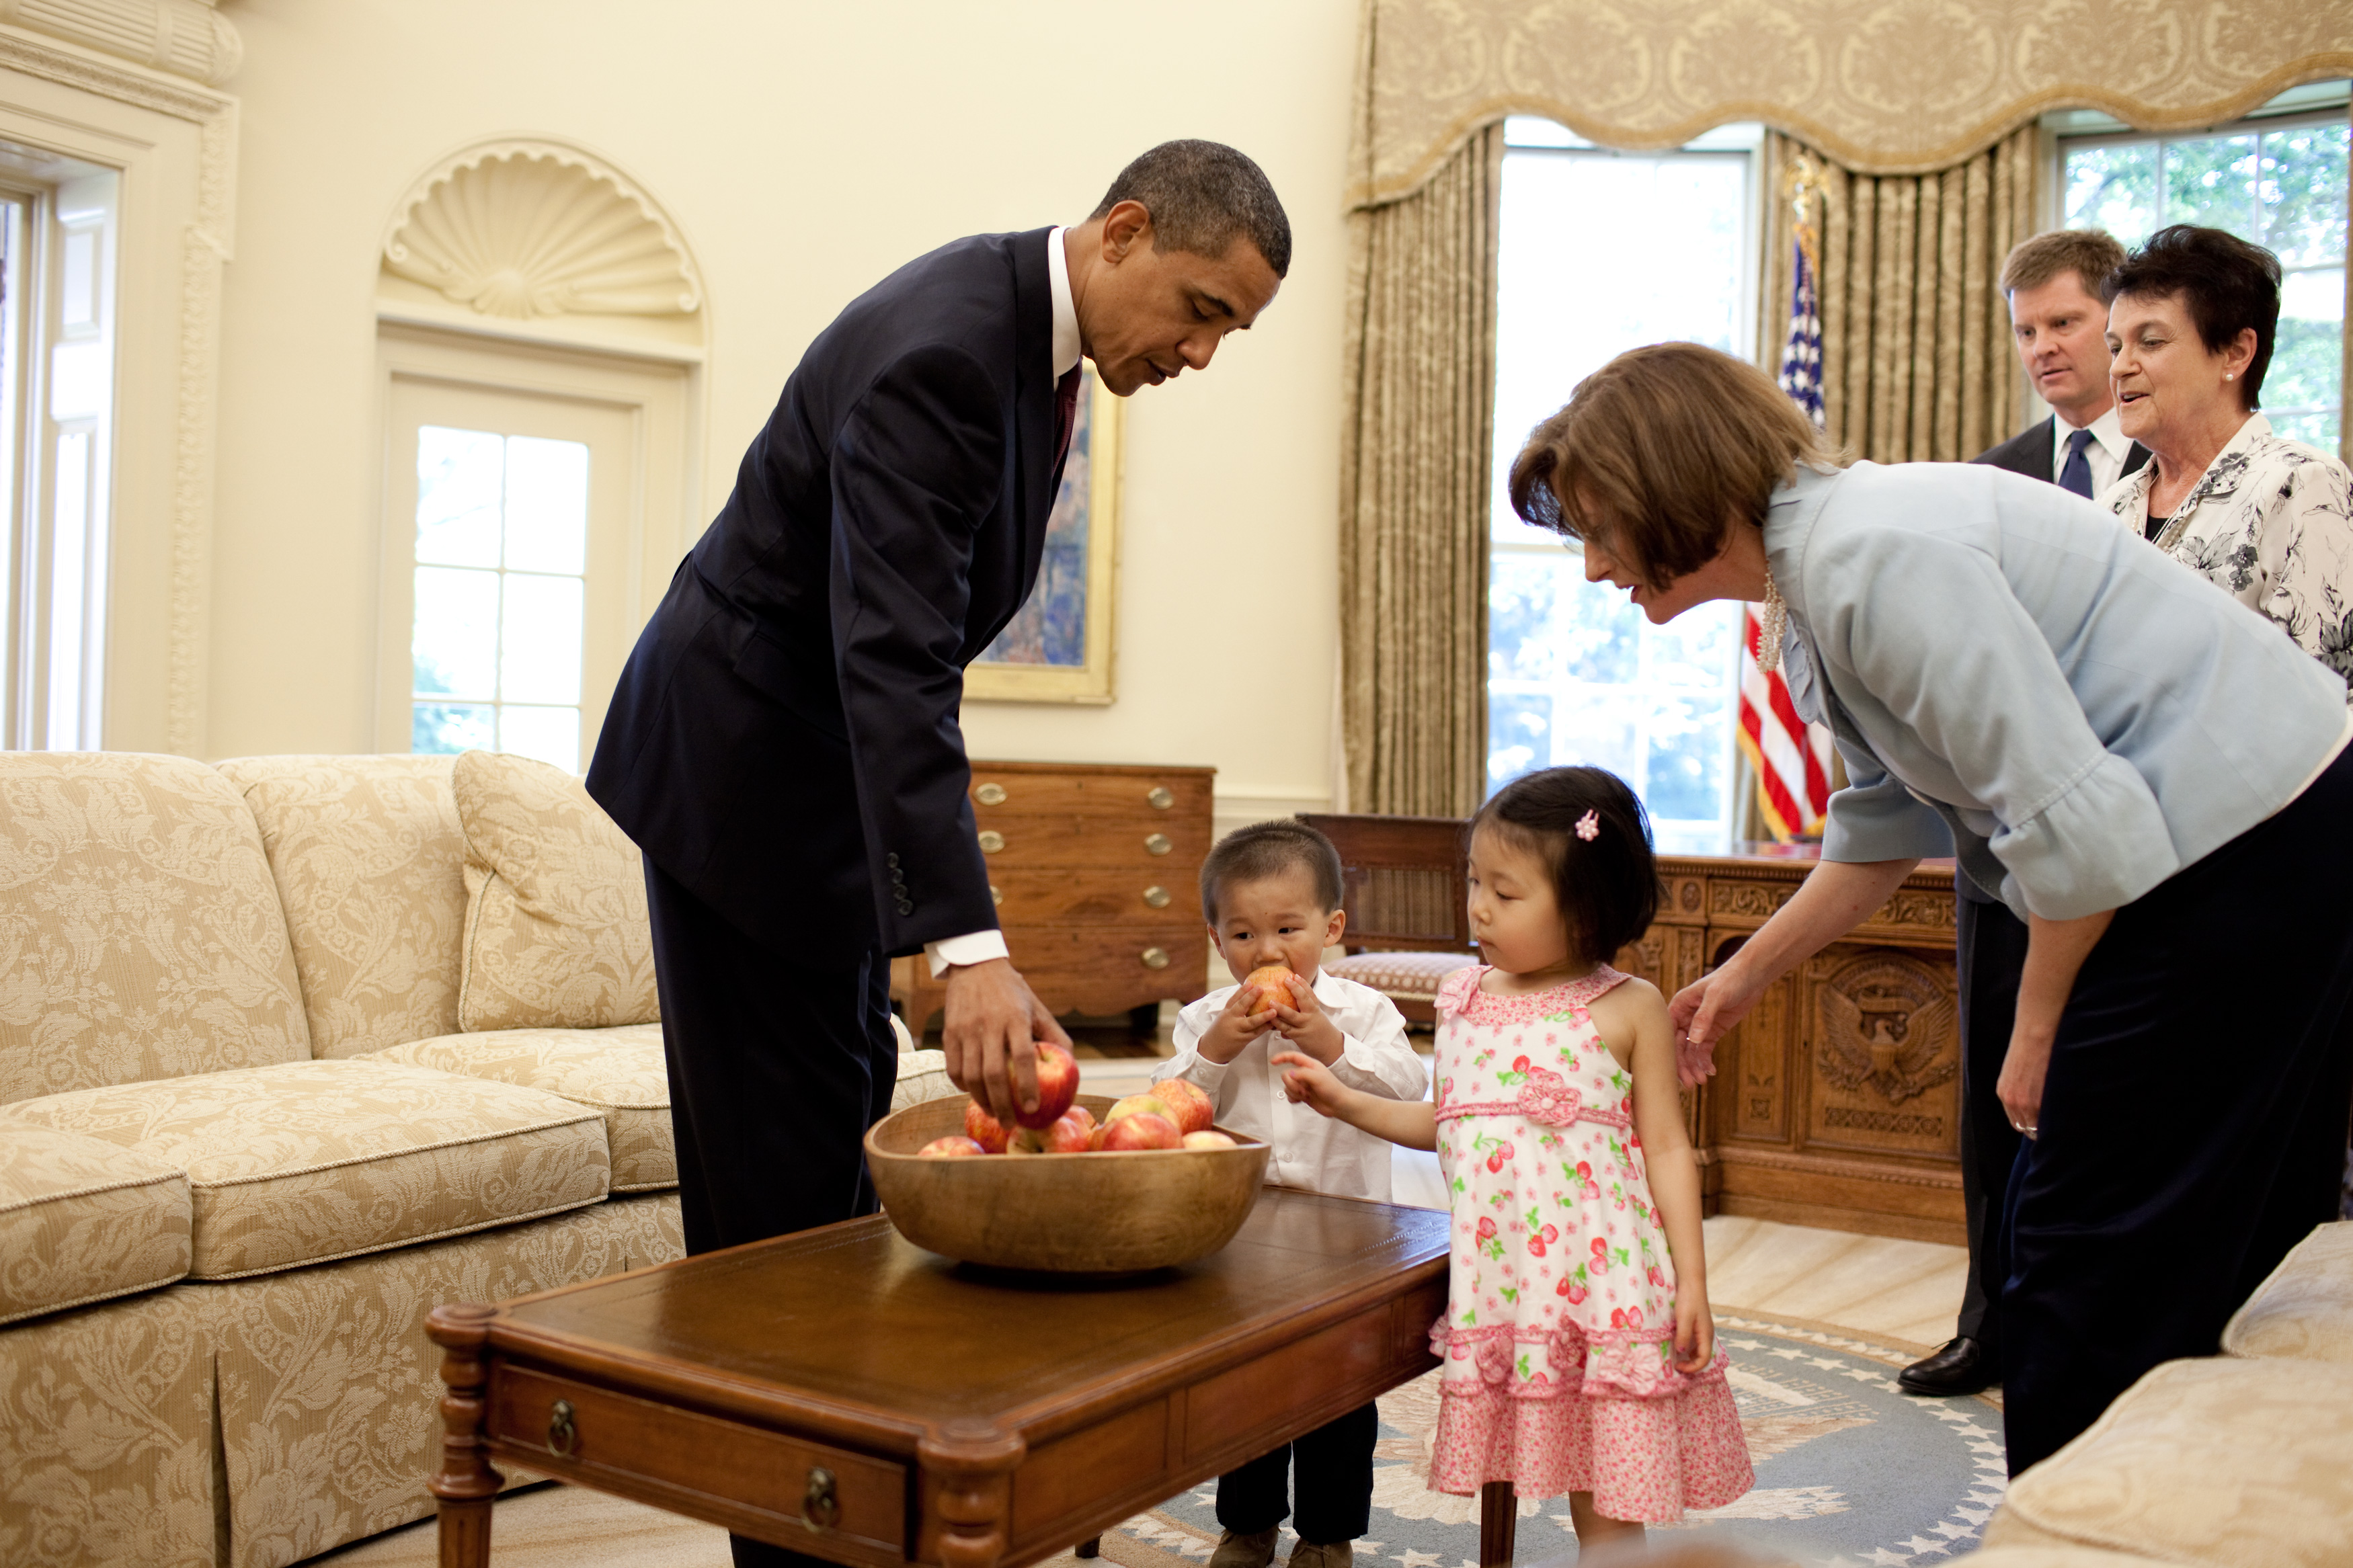 President Barack Obama in the Oval Office with former White House Communications Director Ellen Moran and her family, June 24, 2009.  (Official White House Photo by Pete Souza) This official White House photograph is being made available for publication by news organizations and/or for personal use printing by the subject(s) of the photograph. The photograph may not be manipulated in any way or used in materials, advertisements, products, or promotions that in any way suggest approval or endorsement of the President, the First Family, or the White House.